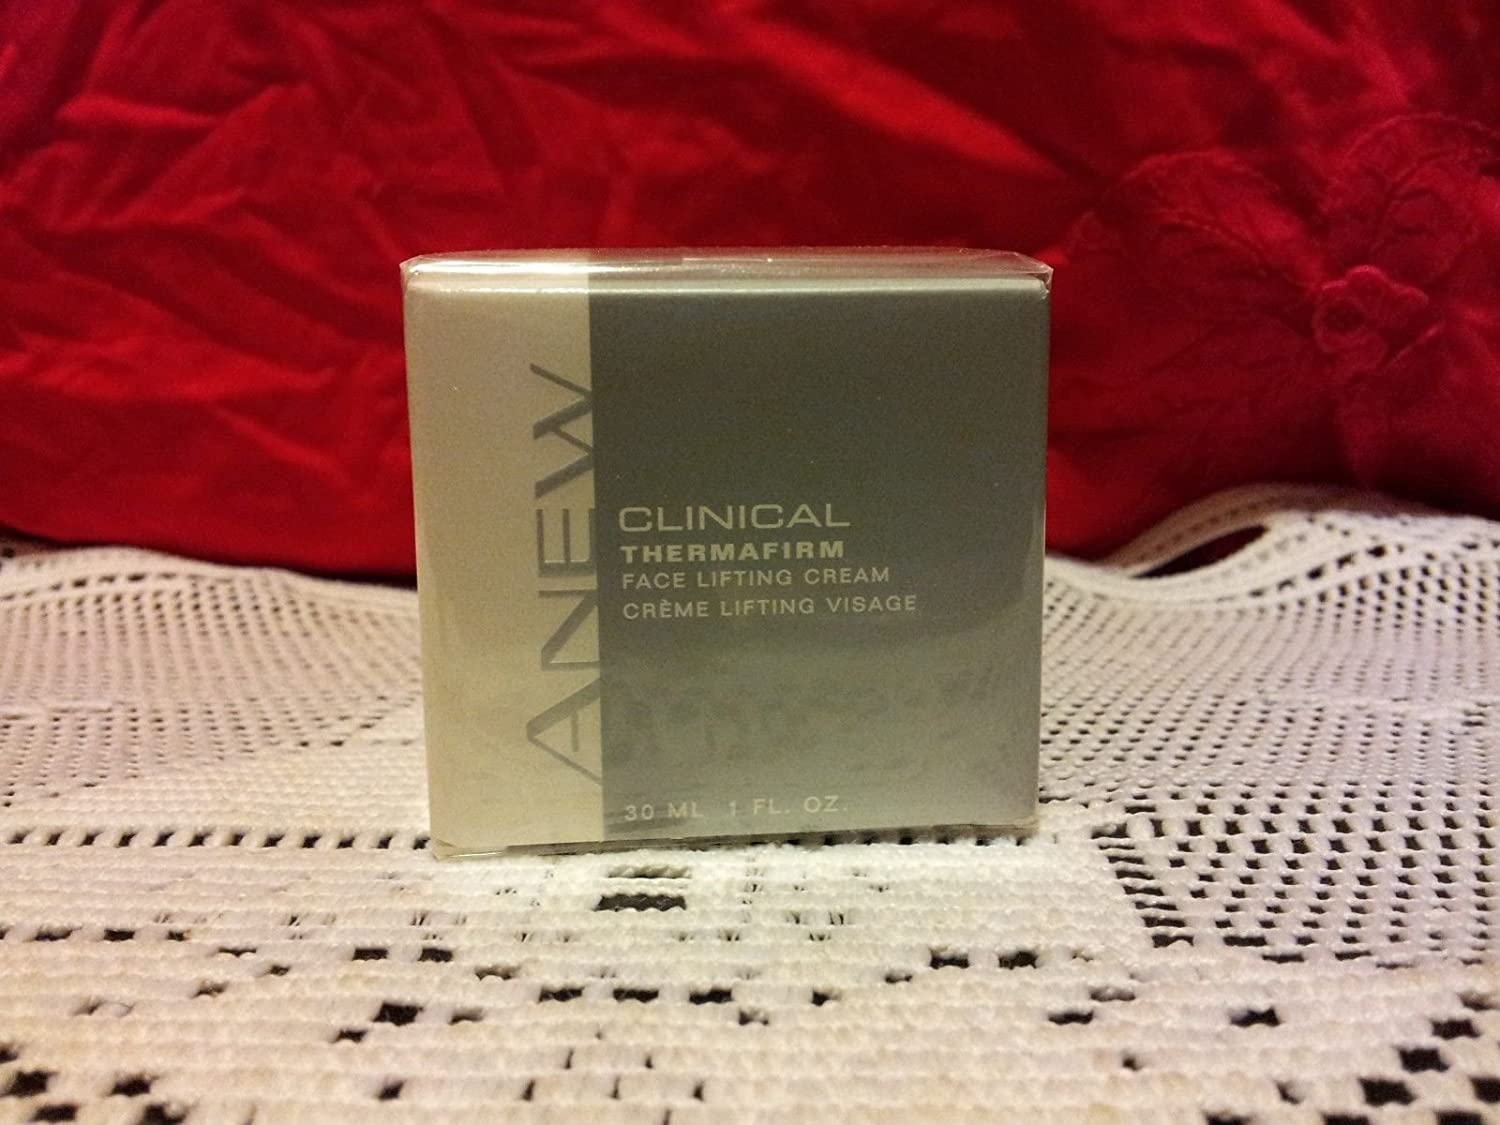 Anew Clinical Thermafirm by Avon Products